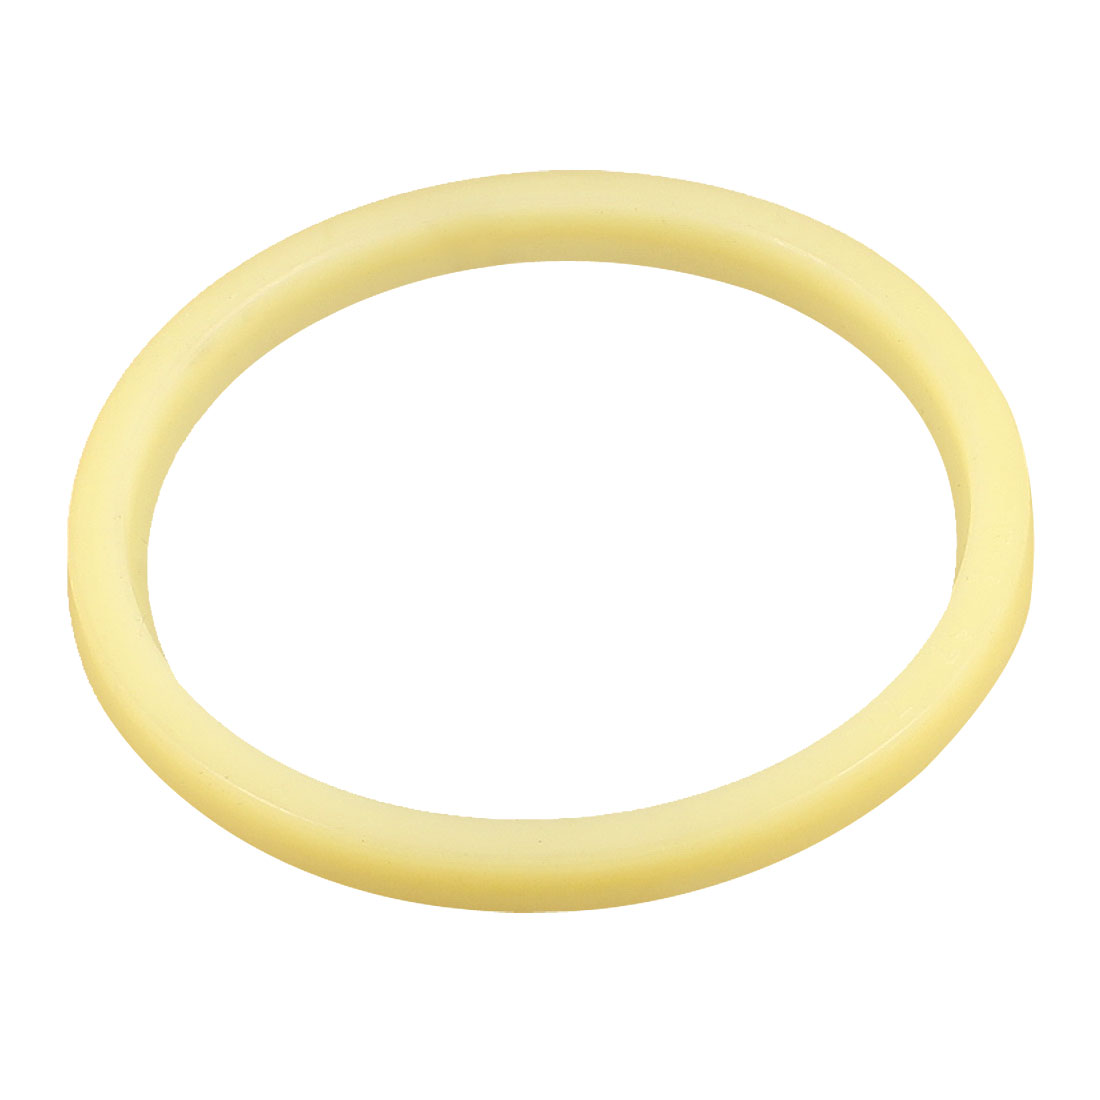 Polyurethane PU 67mm x 77mm x 6mm Sealing Cushion Dust Seal Ring